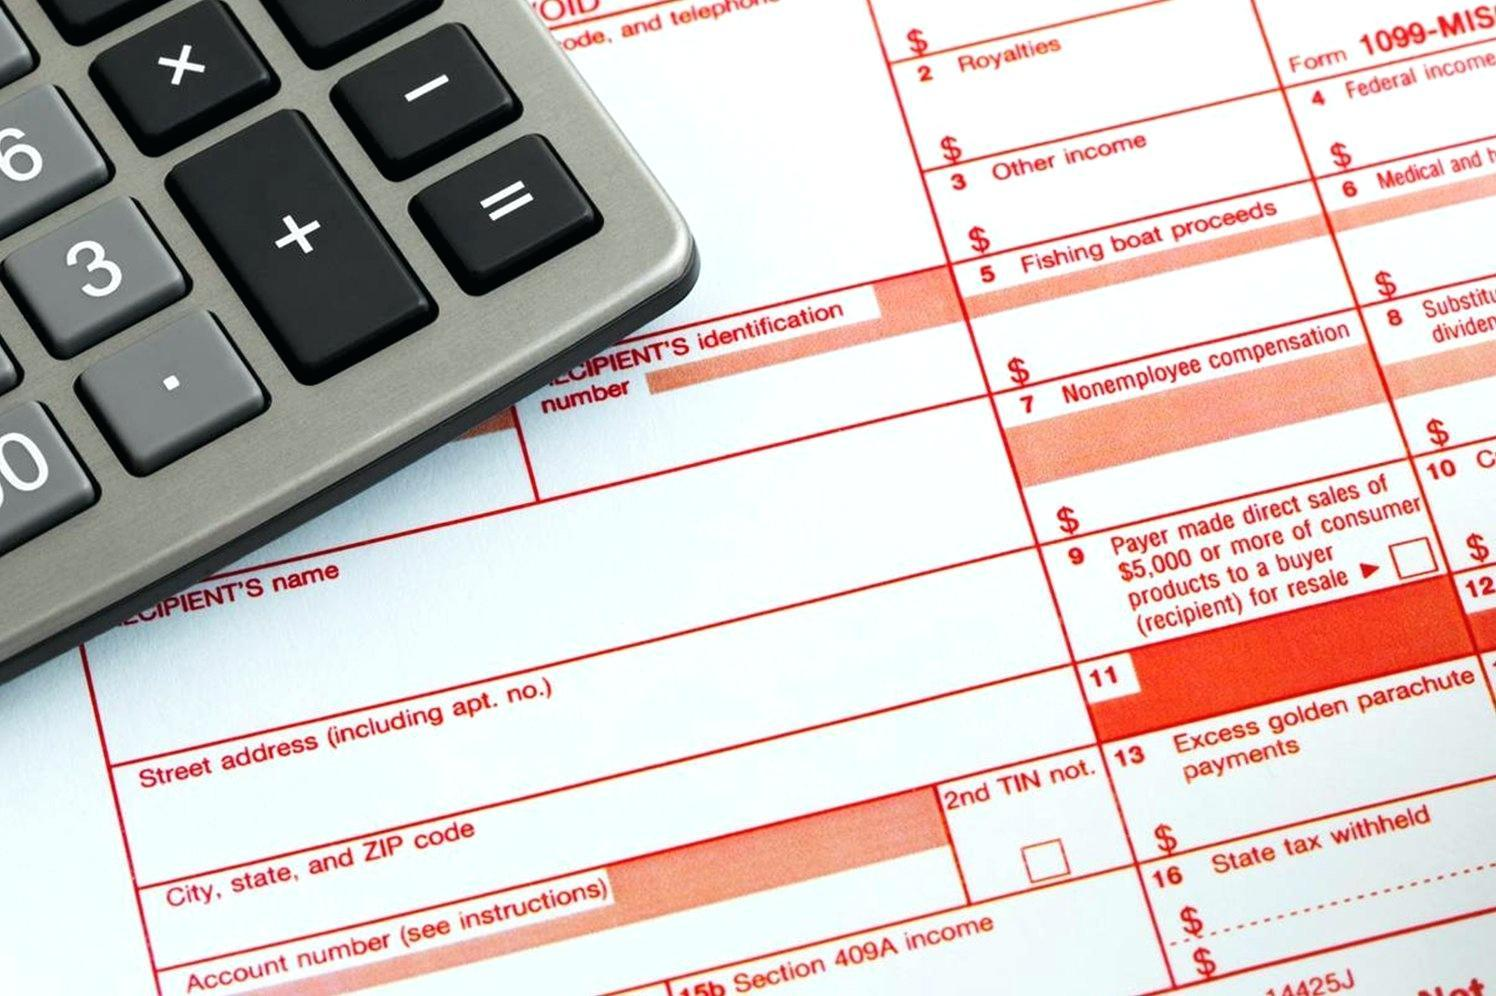 Federal Tax Form 1099 Misc Instructions